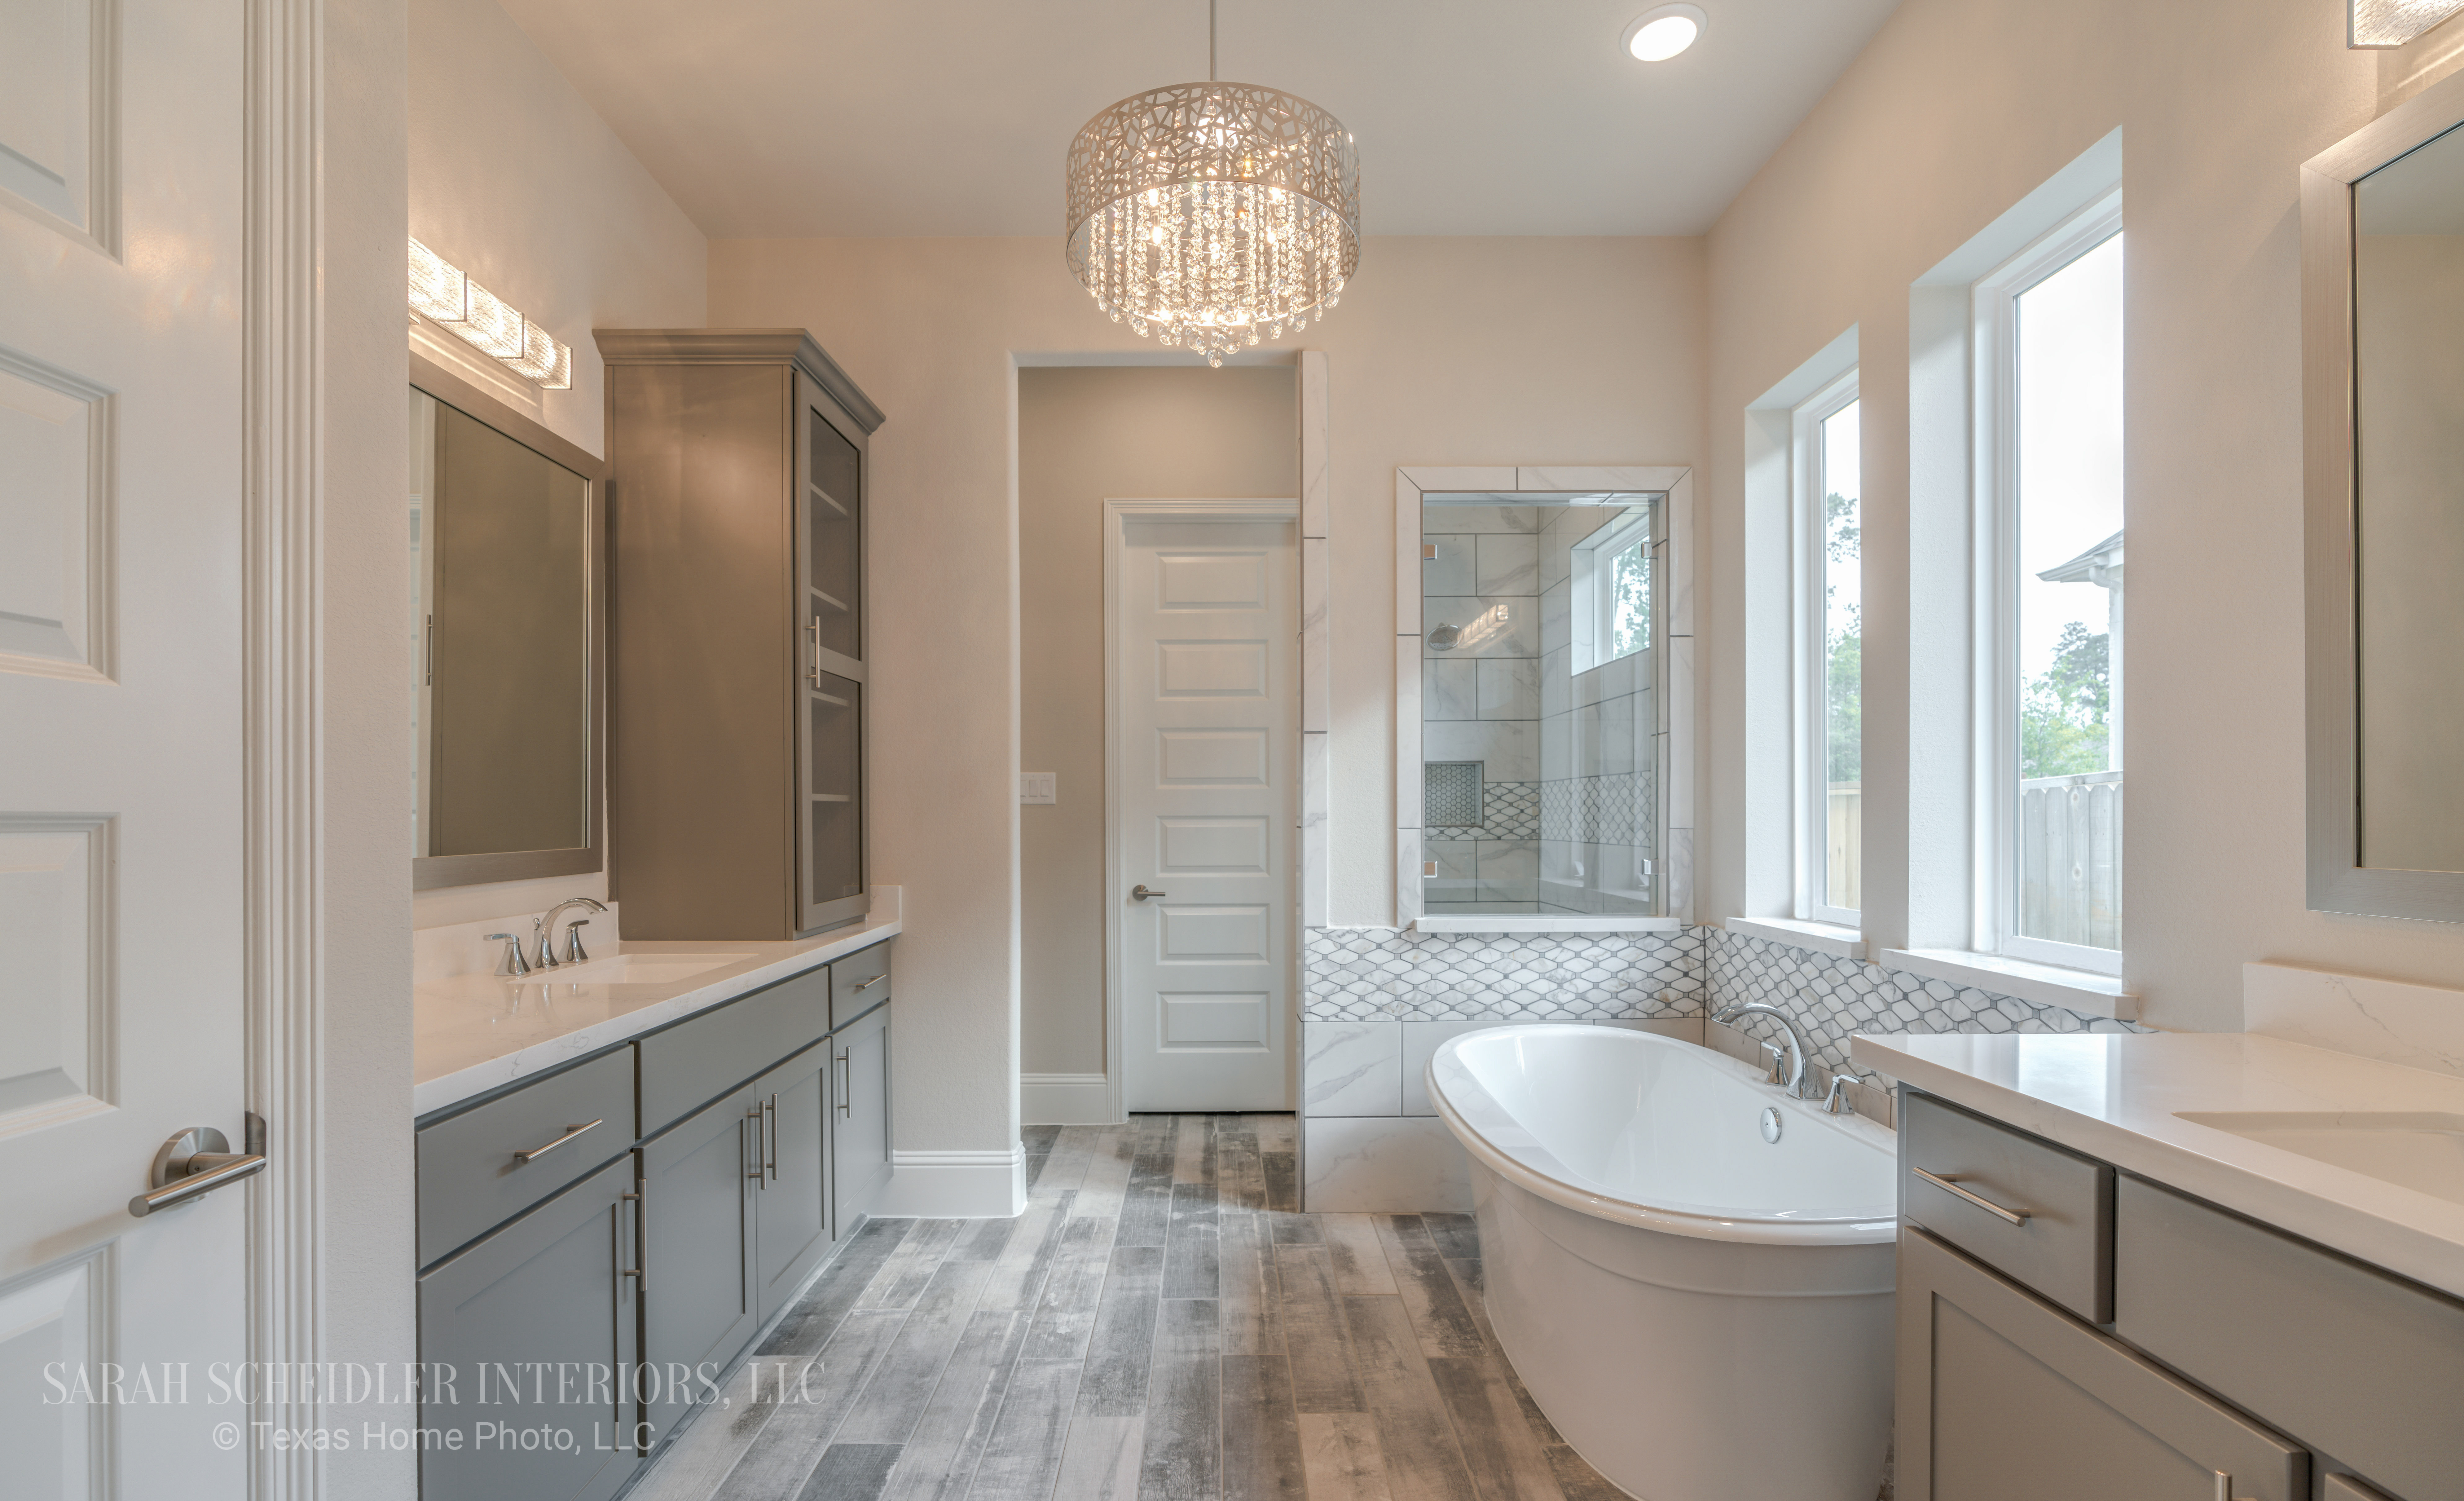 White and Grey Rustic Glam Primary Bathroom Design with Freestanding Tub, Marble Accent Tile, Crystal Lighting and Wood Tile Flooring